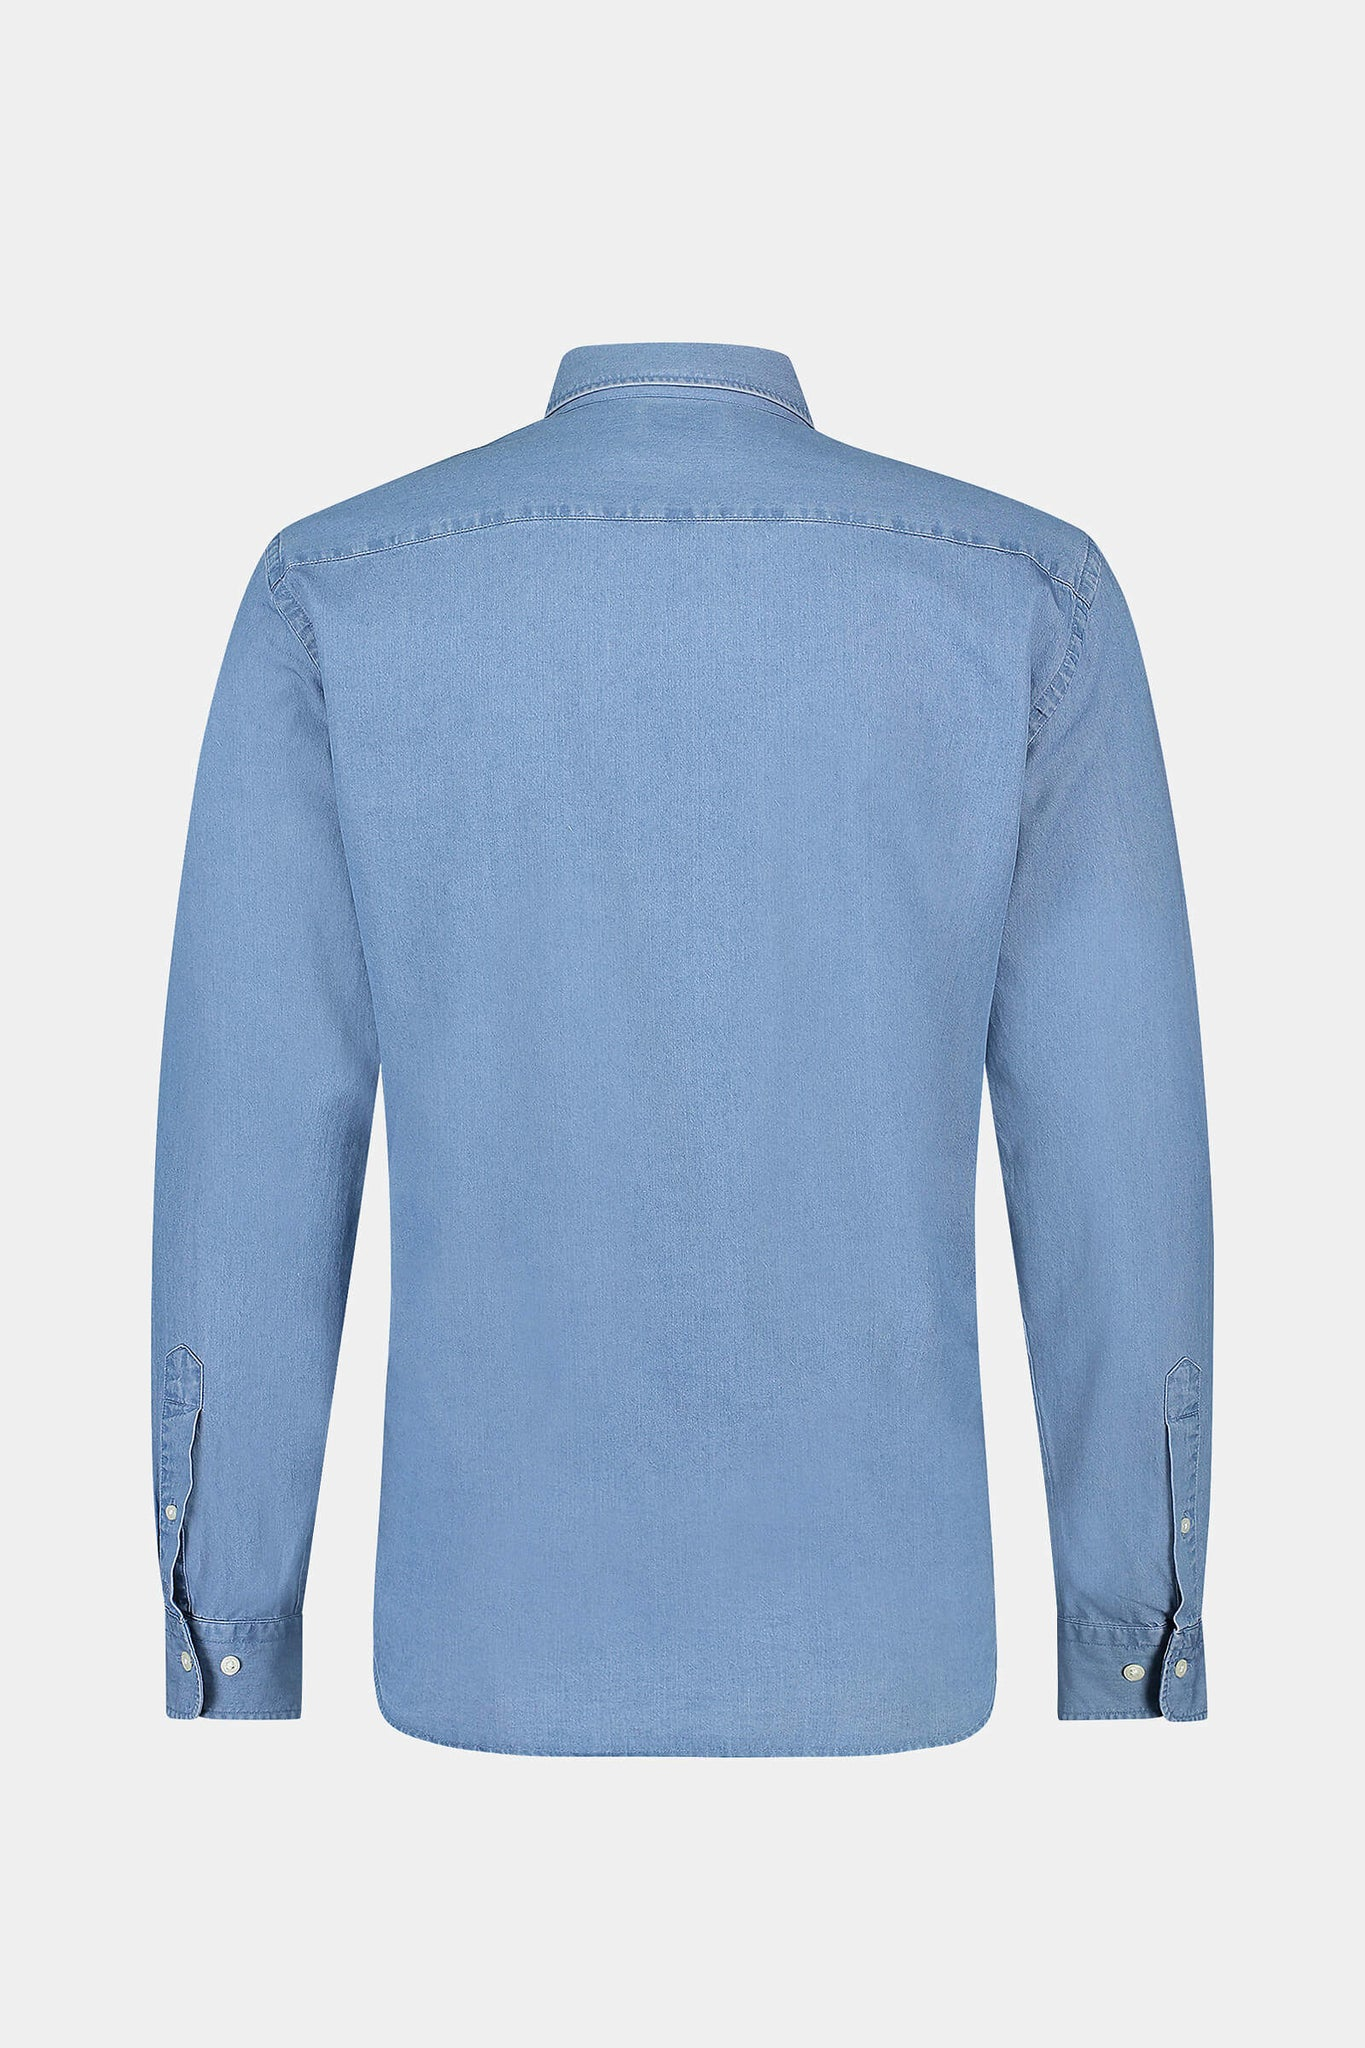 The McG RF Denim Shirt